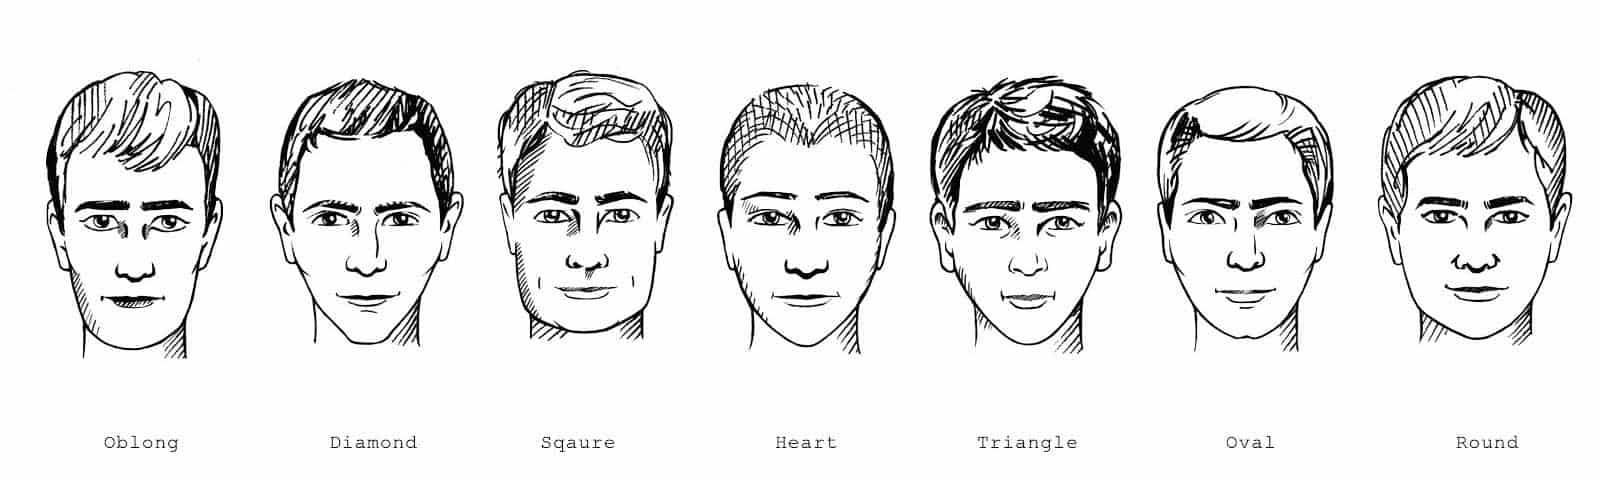 Beard Styles Depending On Your Face Shae